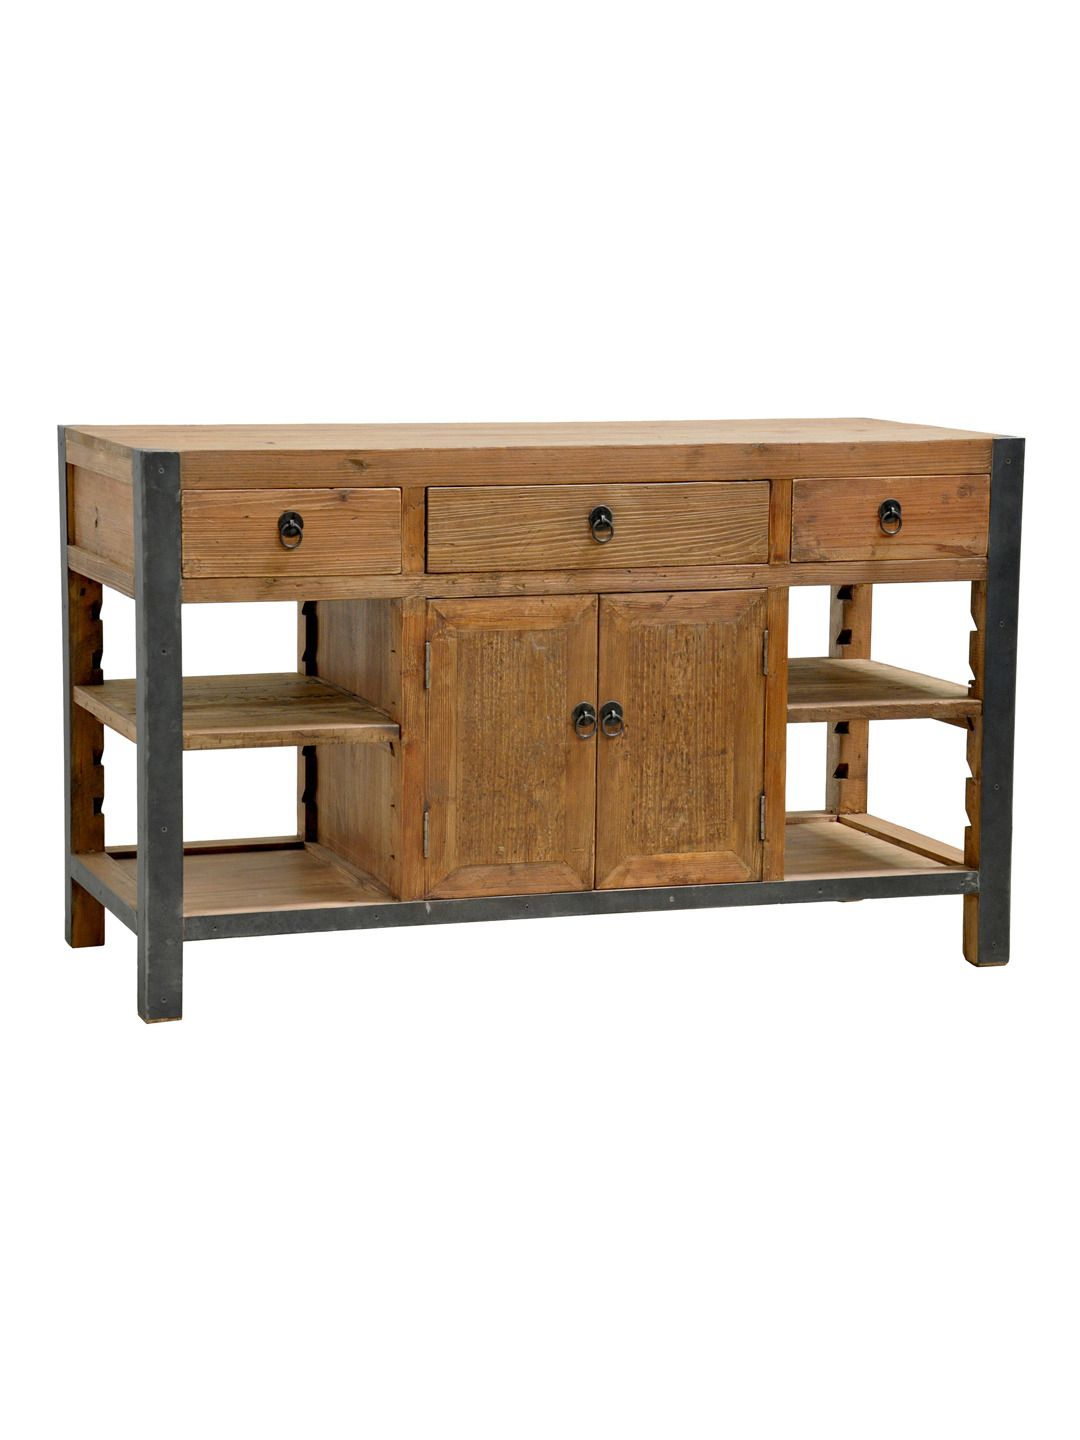 Kitchen Island Add A Small Cabinet On Left And Right Side For Most Popular Elworth Kitchen Island (View 17 of 25)